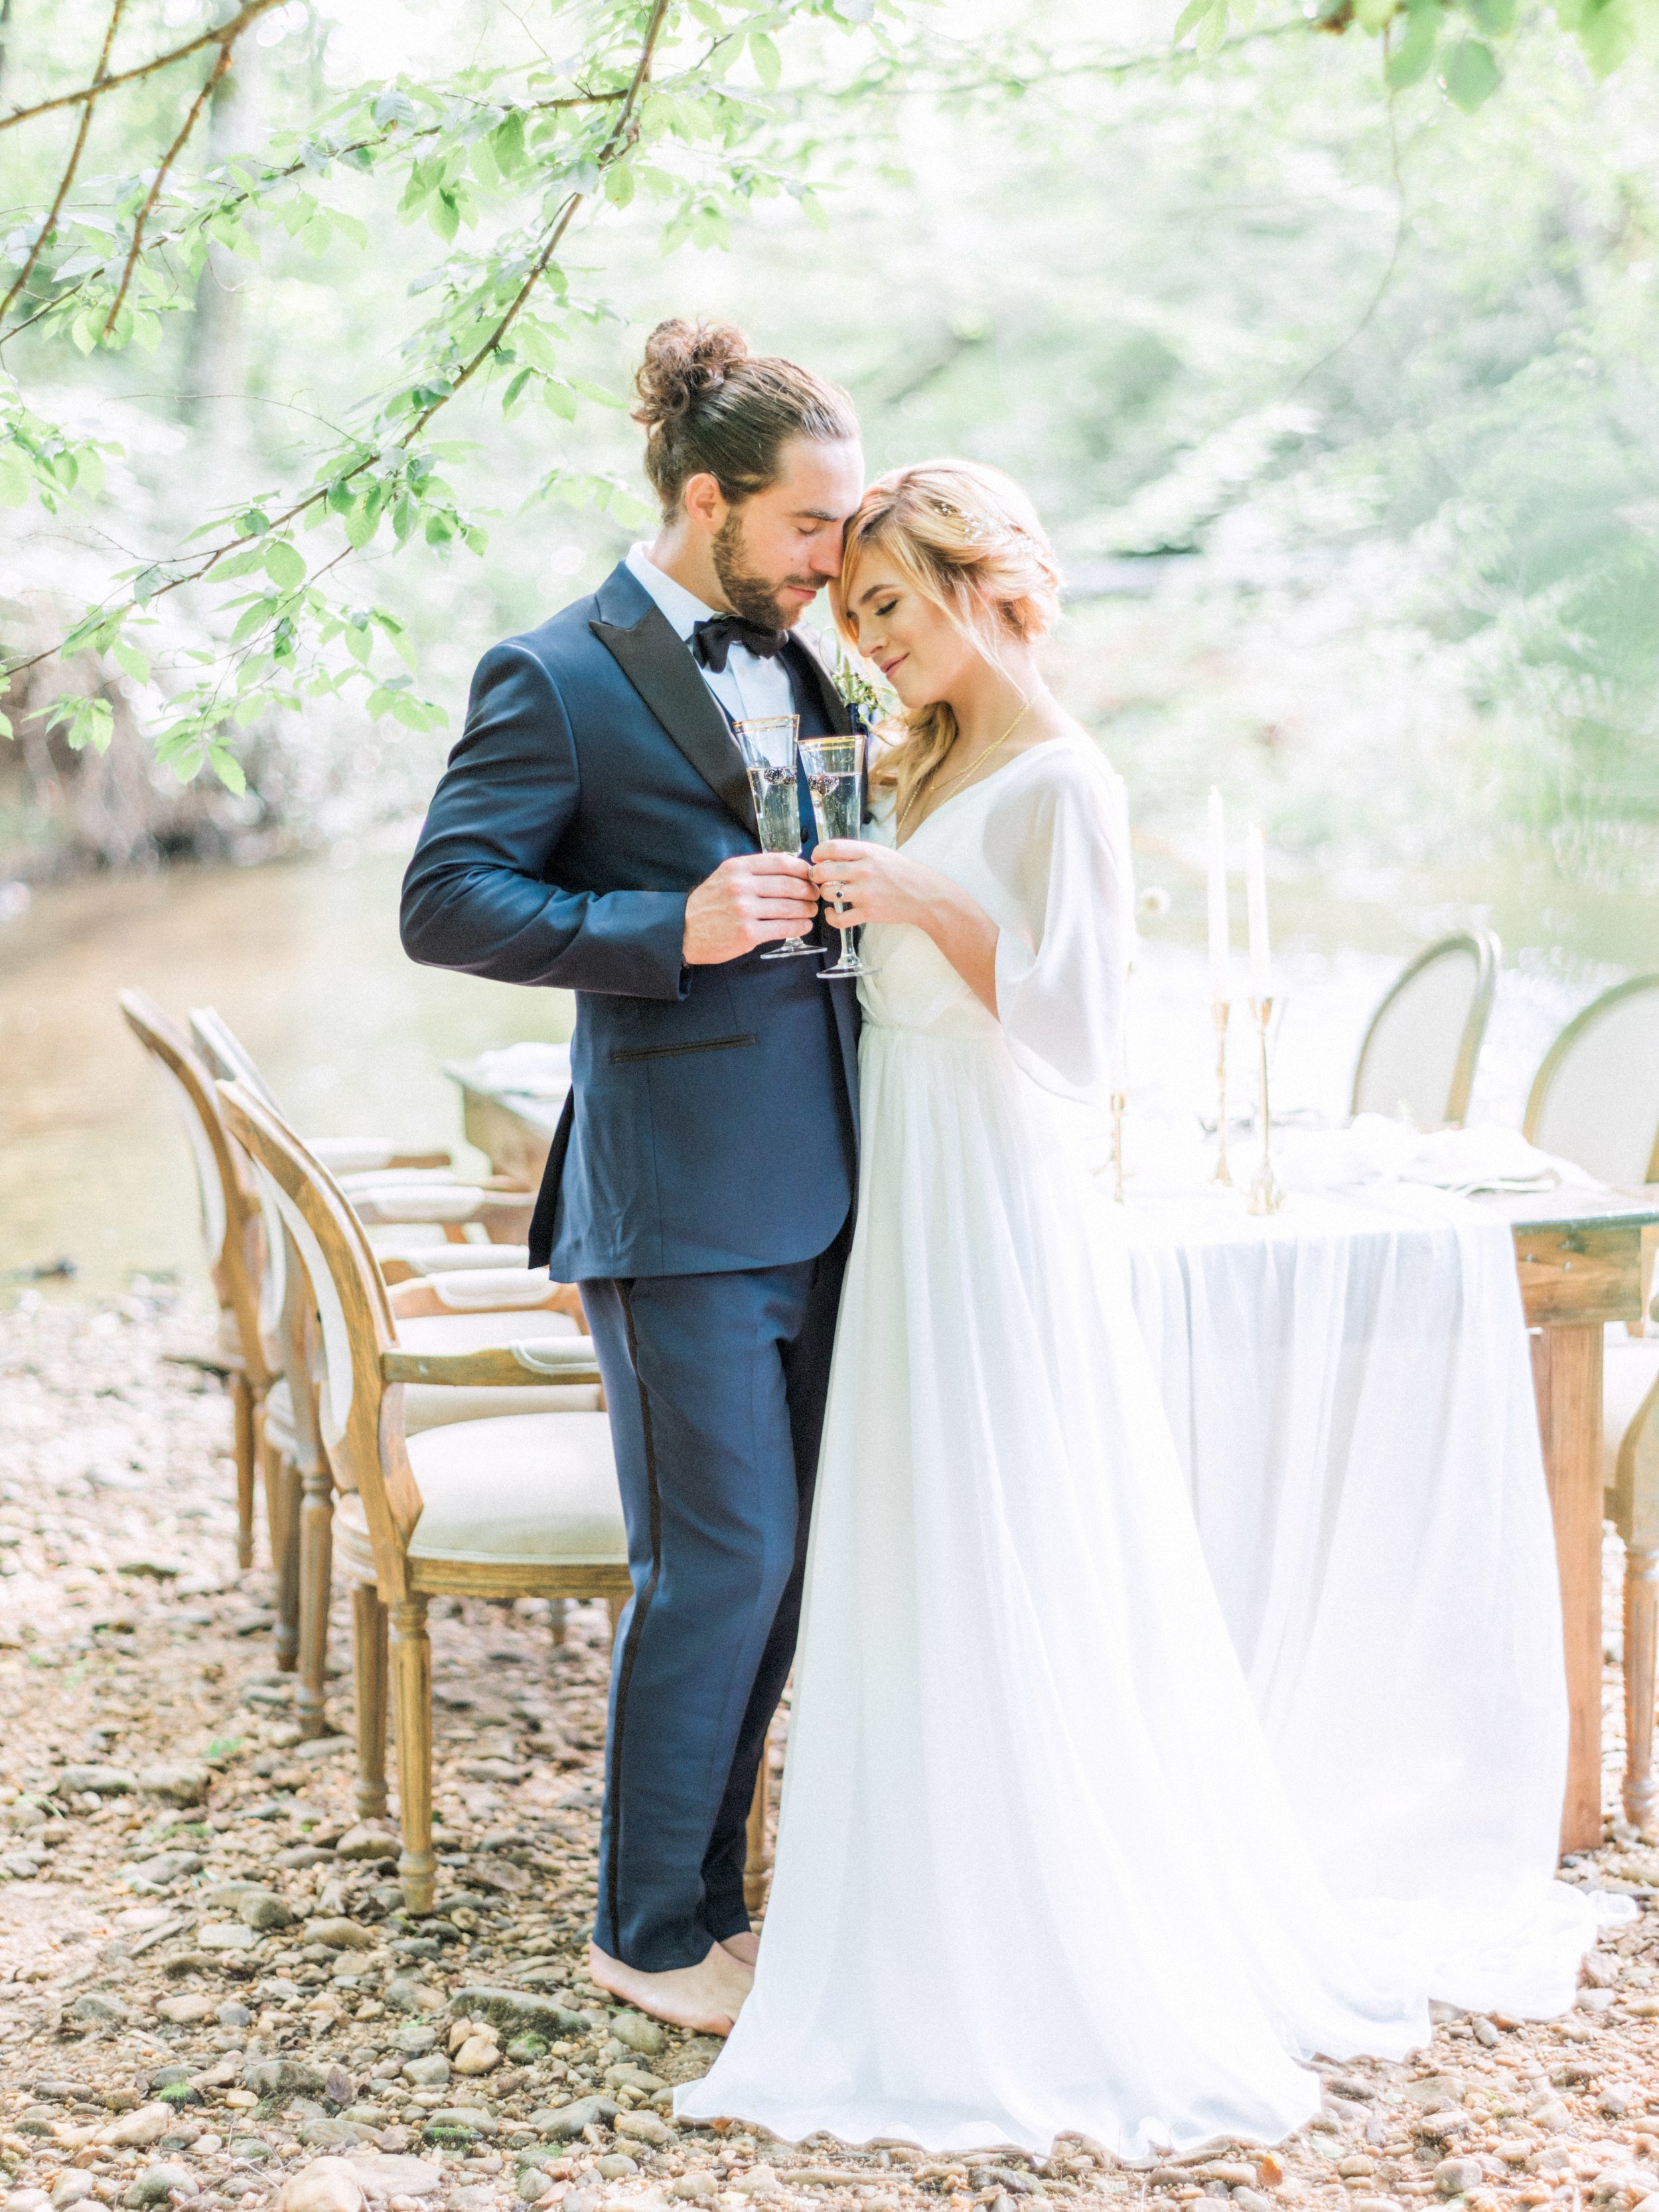 Destination wedding in Asheville, NC